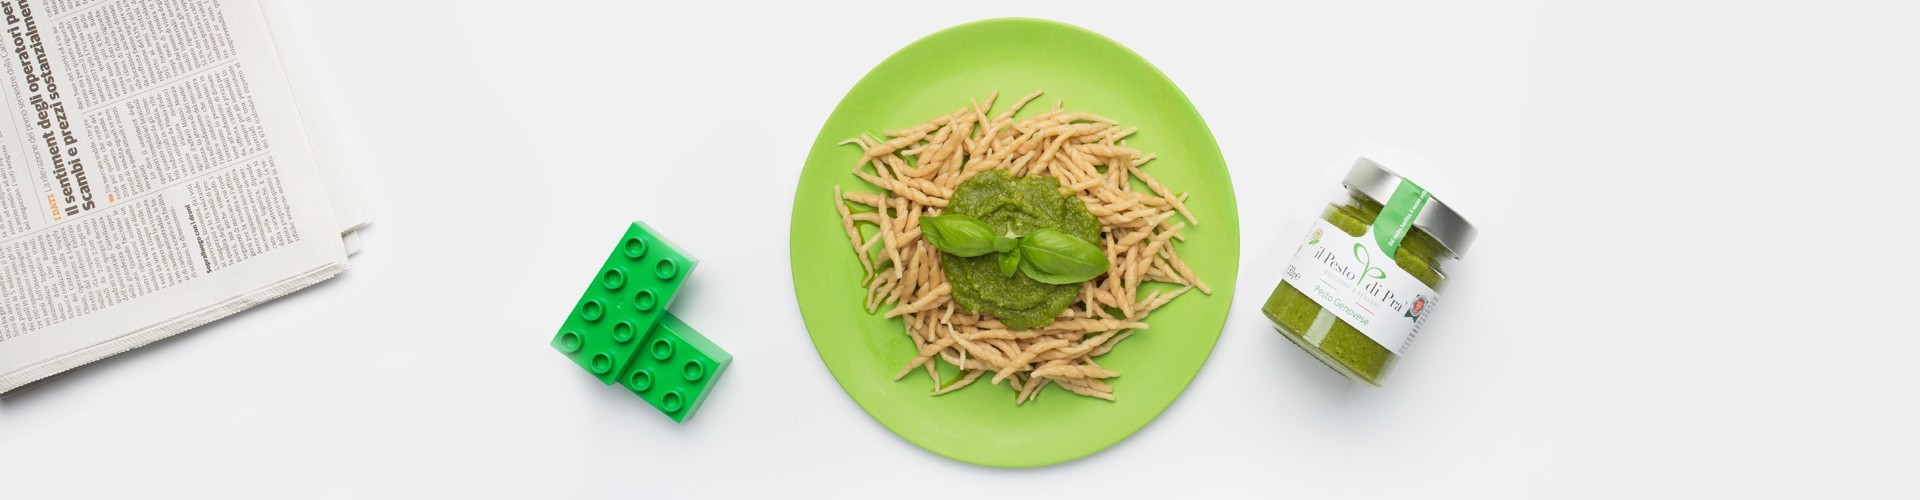 Original Genoa Pesto Online Shop | Classic Basil Pesto | Pesto Sauce Brands | Canned Pesto